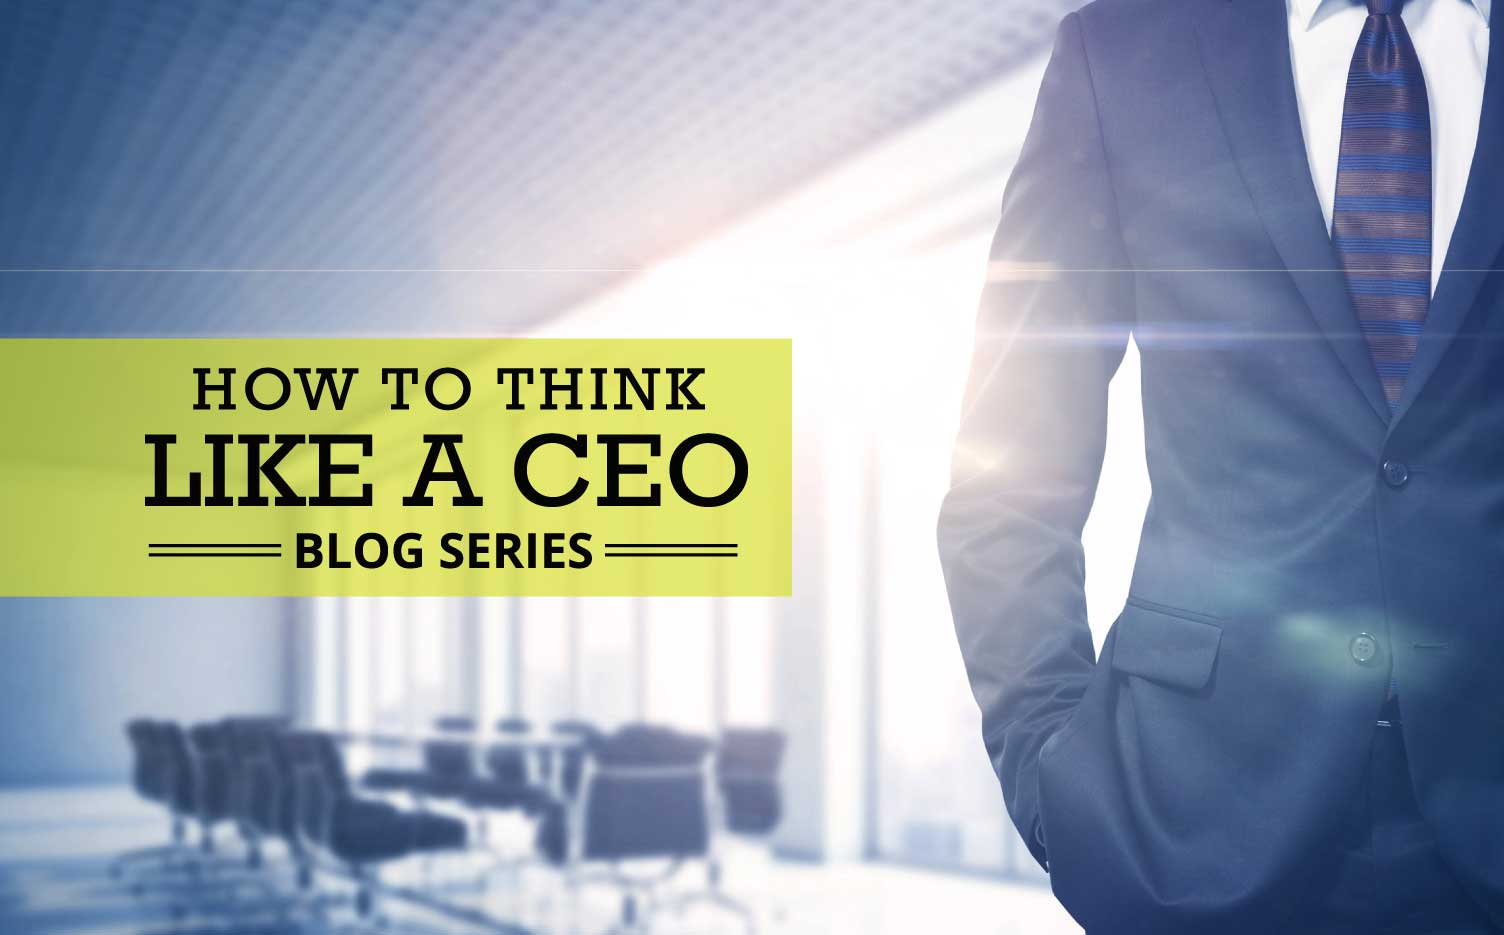 How to Think Like a CEO Blog